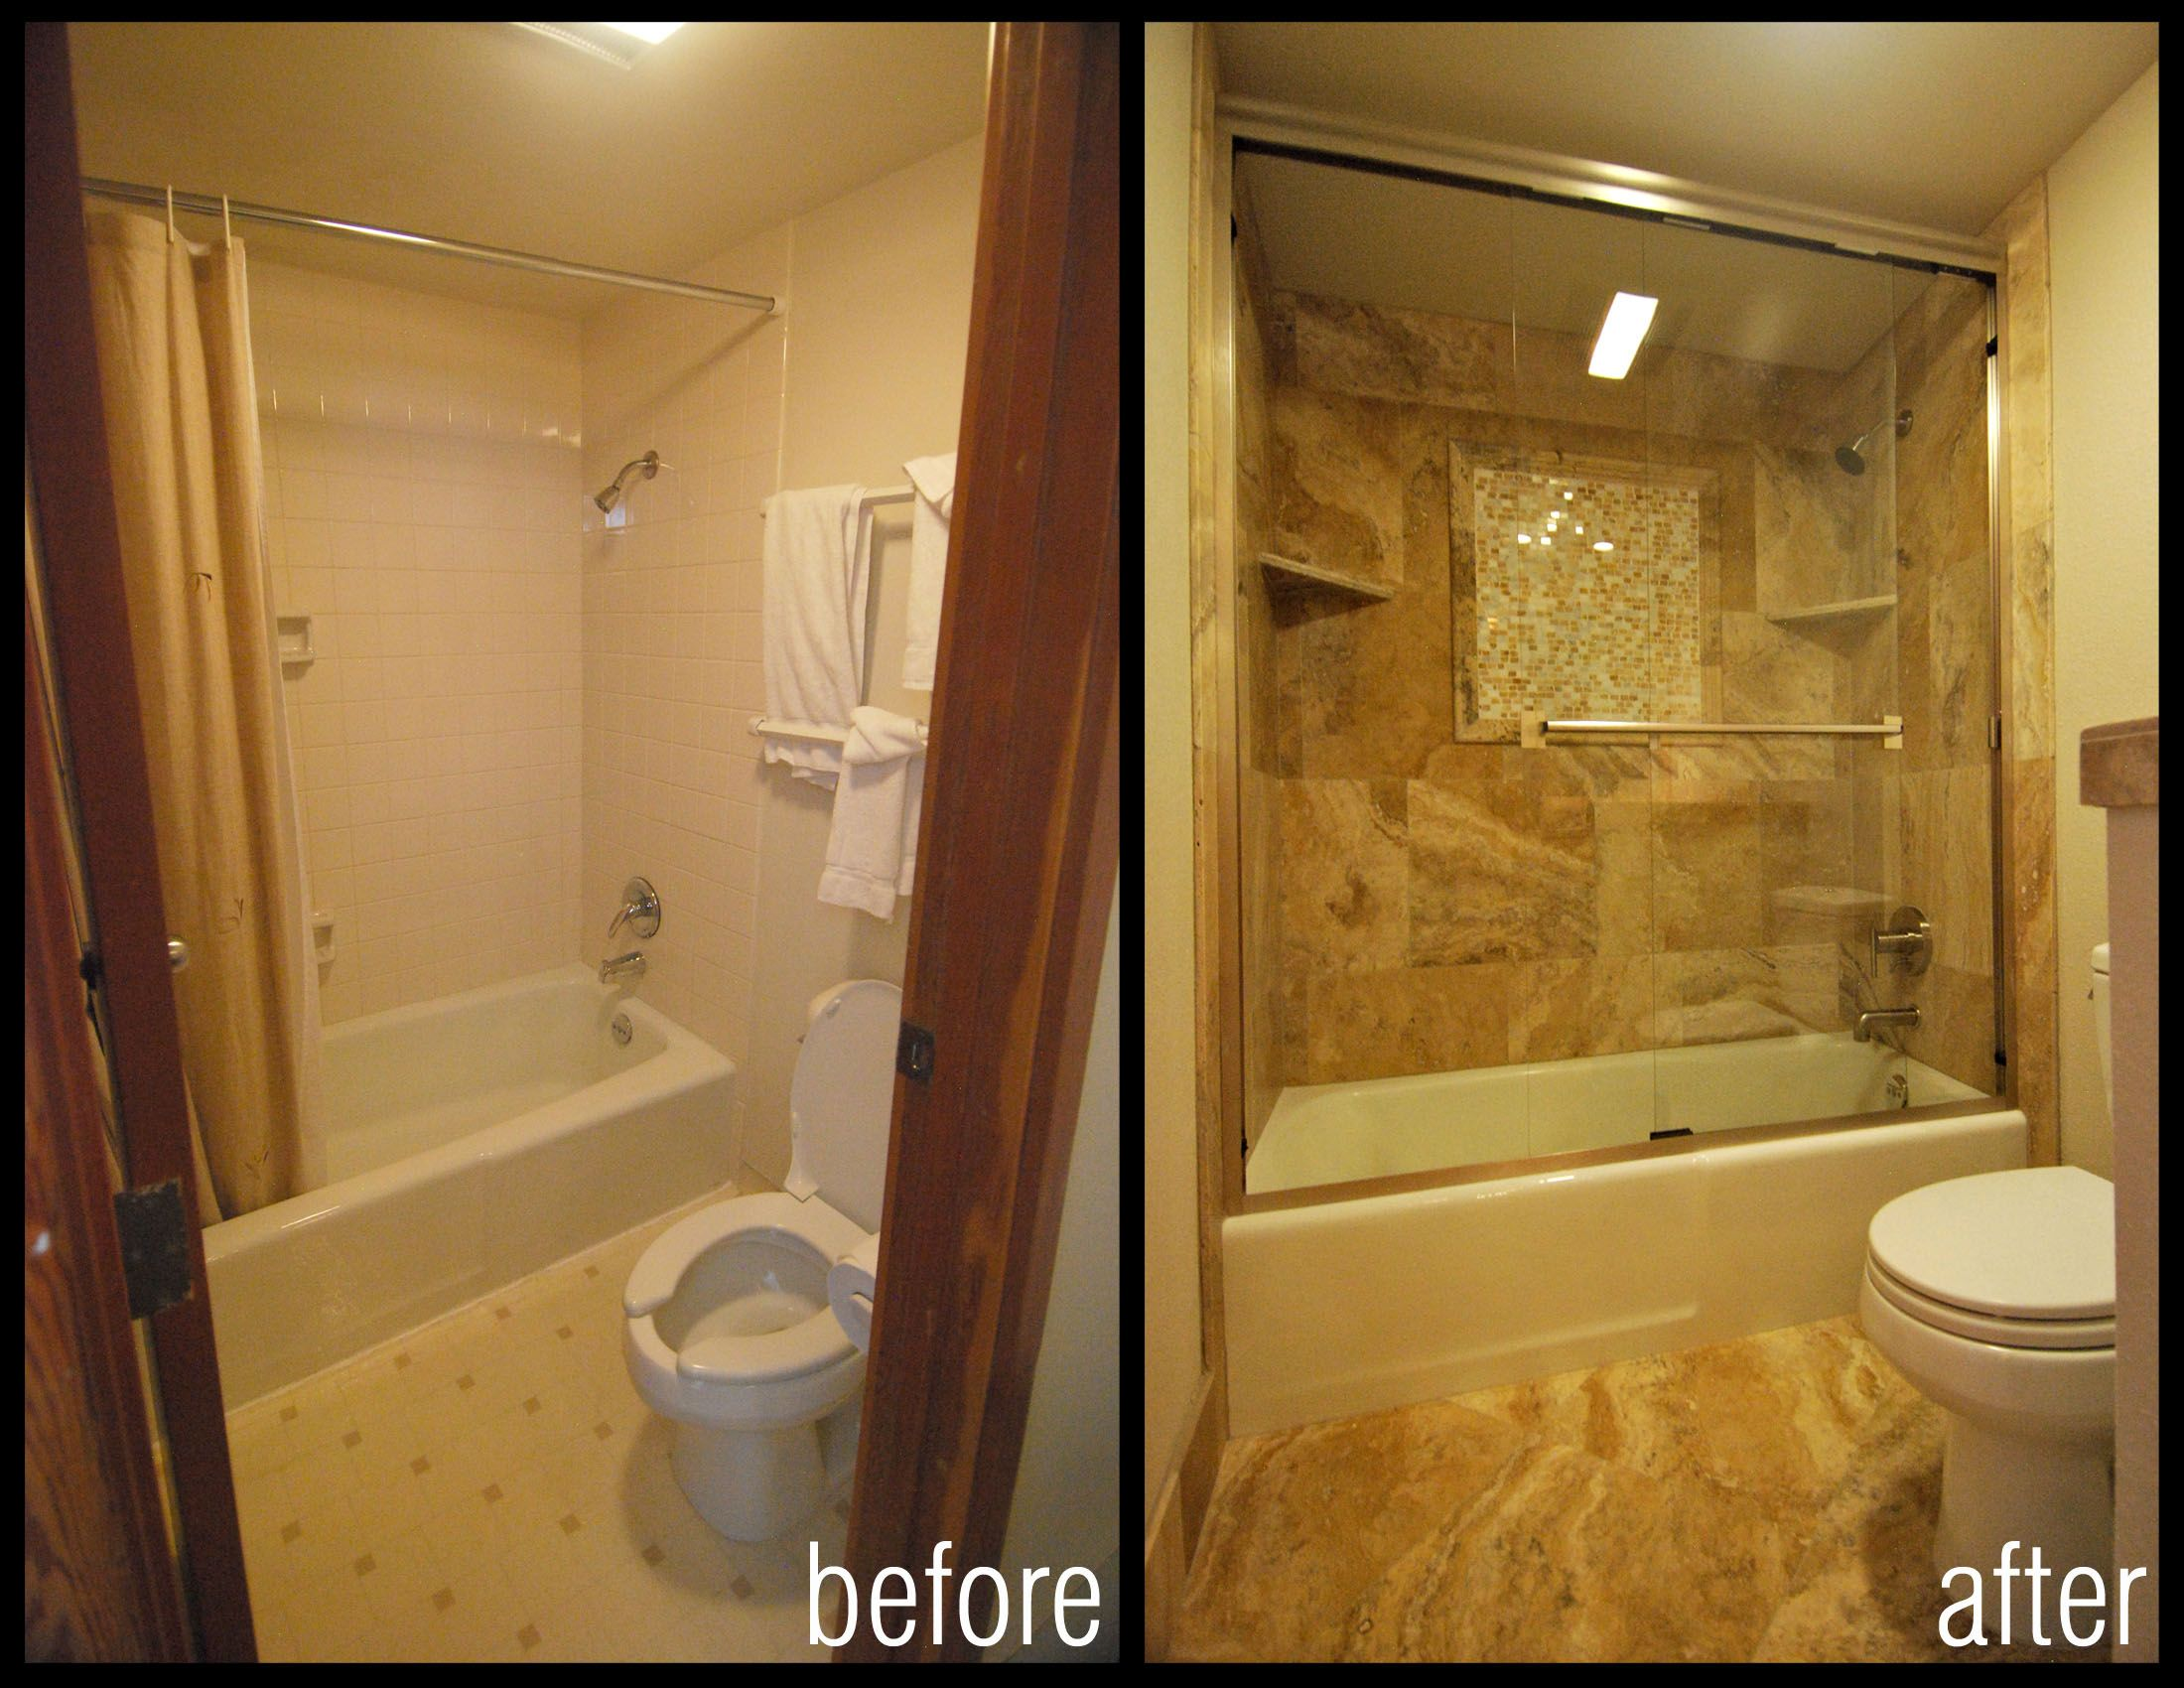 Before and after images of bathroom shower remodels Before and after interior design projects